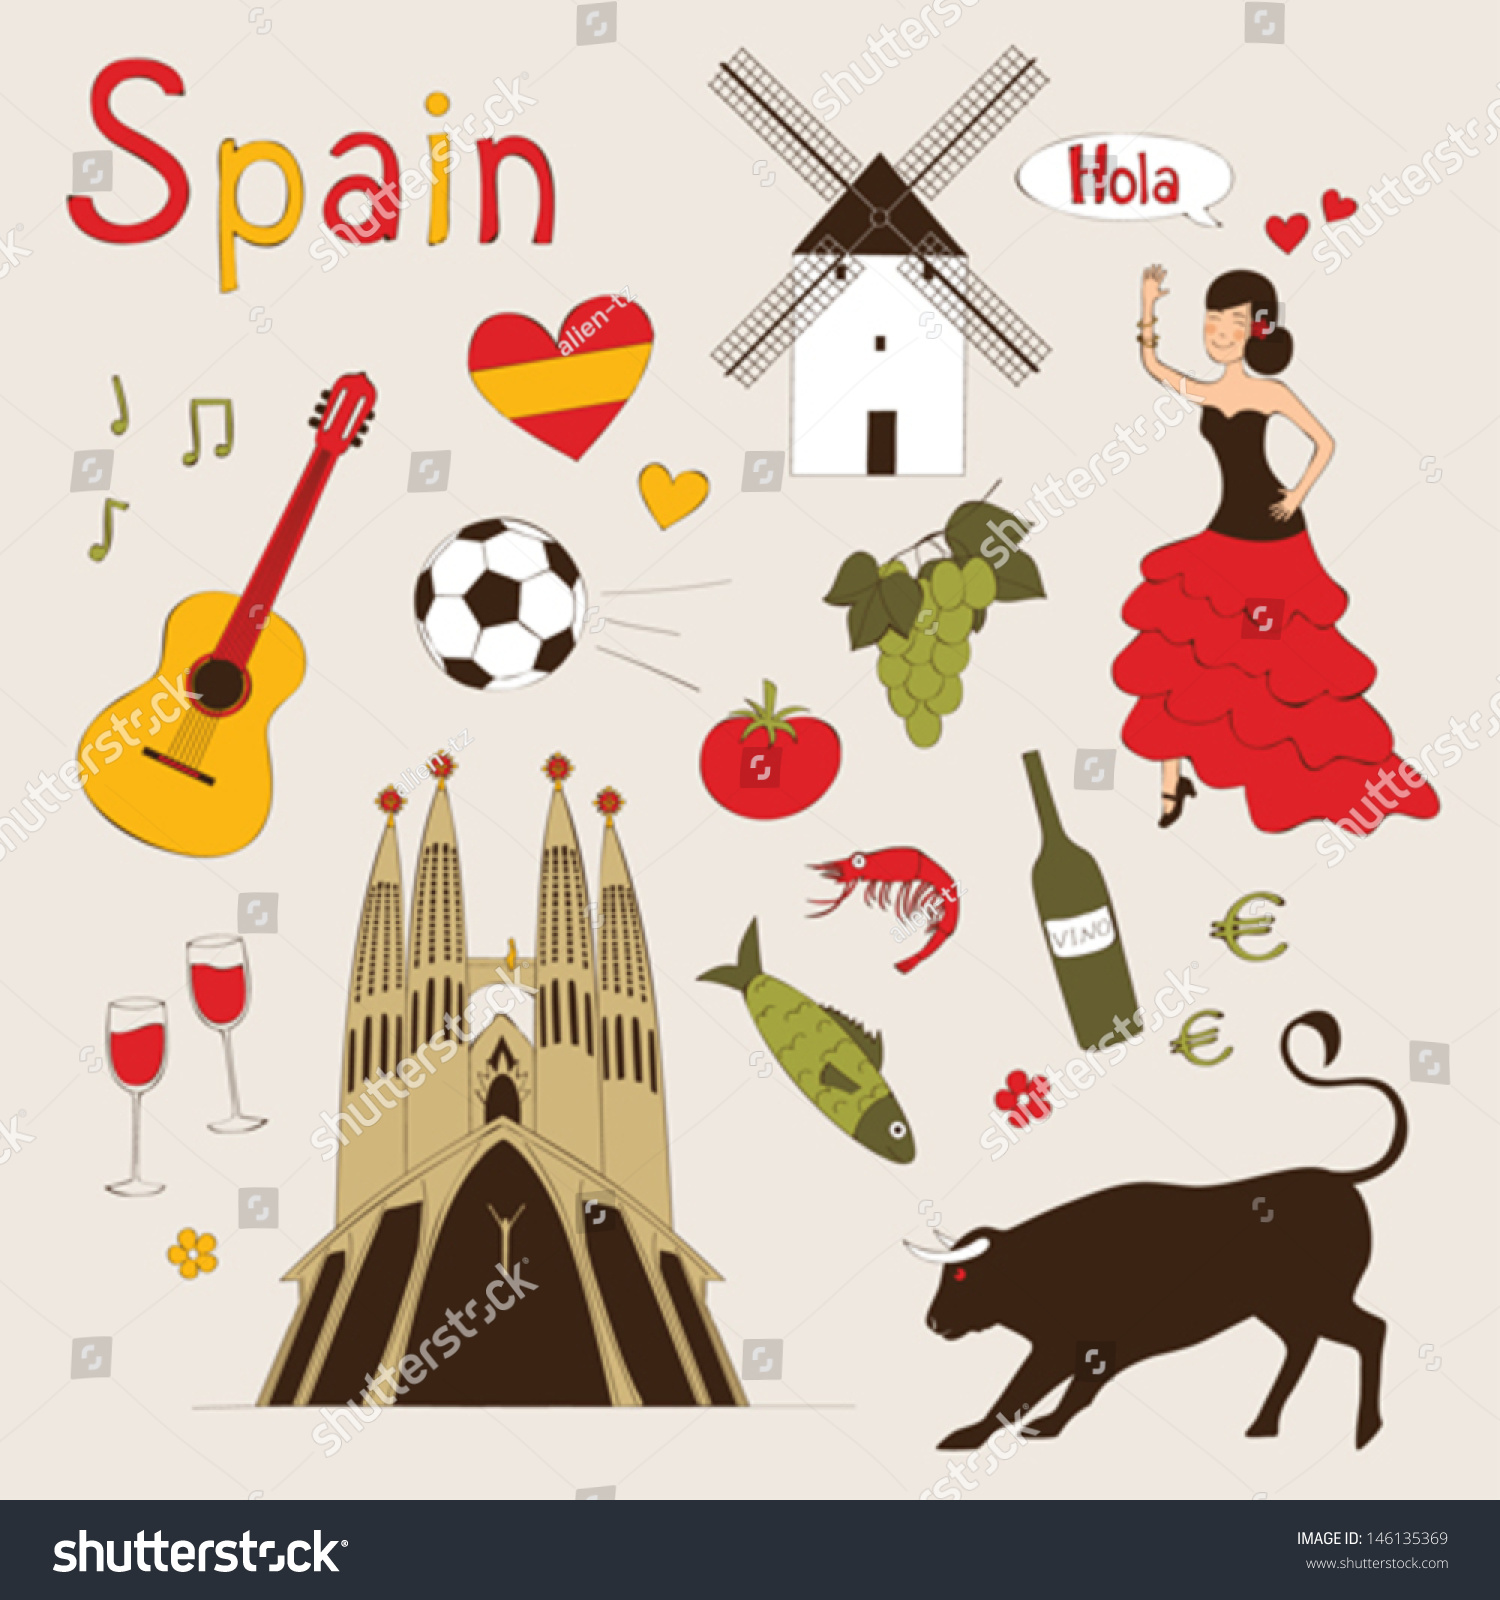 Love Spain Doodles Symbols Spain Endless Stock Vector ...